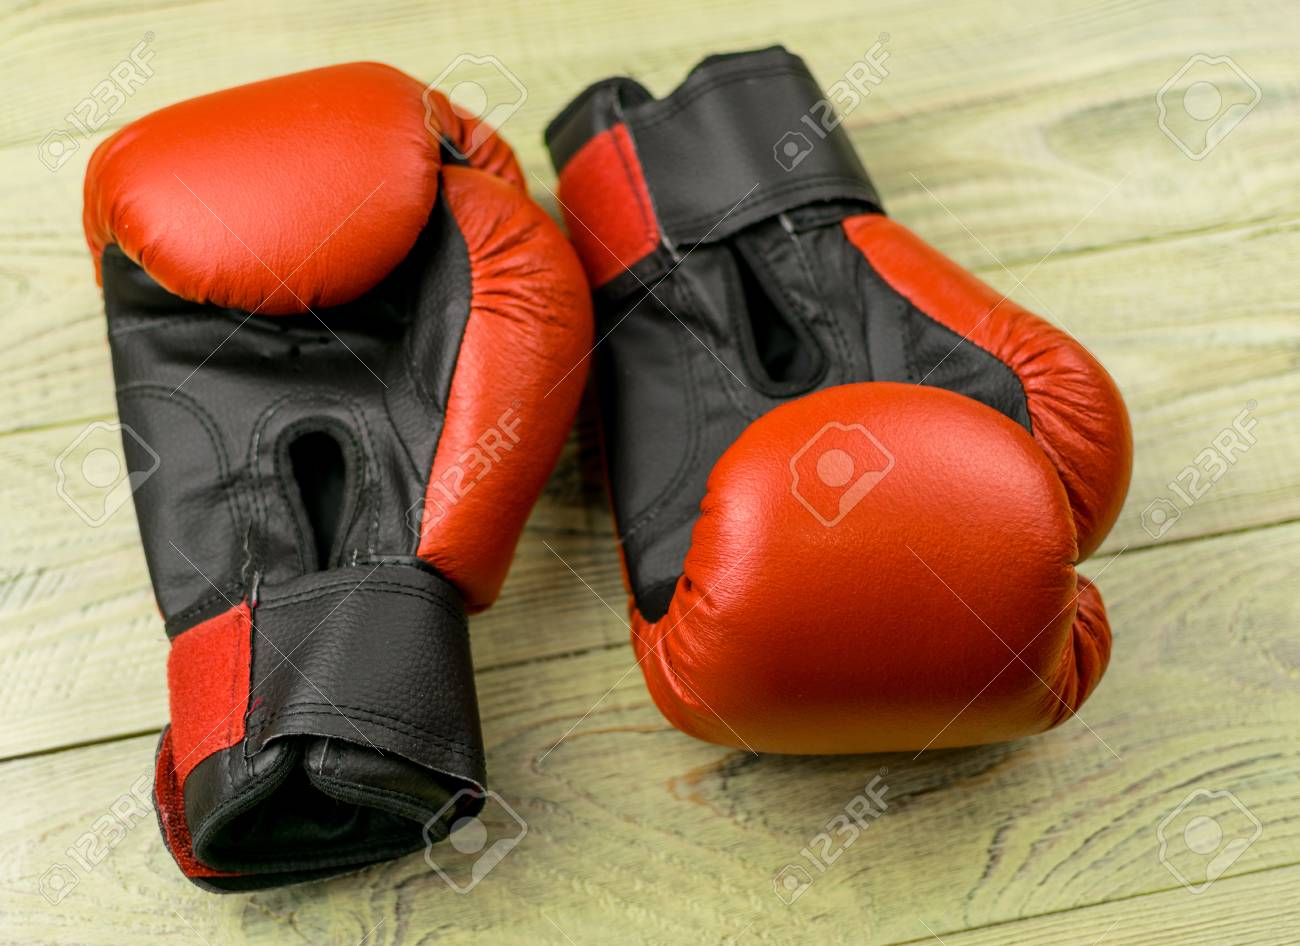 boxing gloves on a wooden background ロイヤリティーフリーフォト